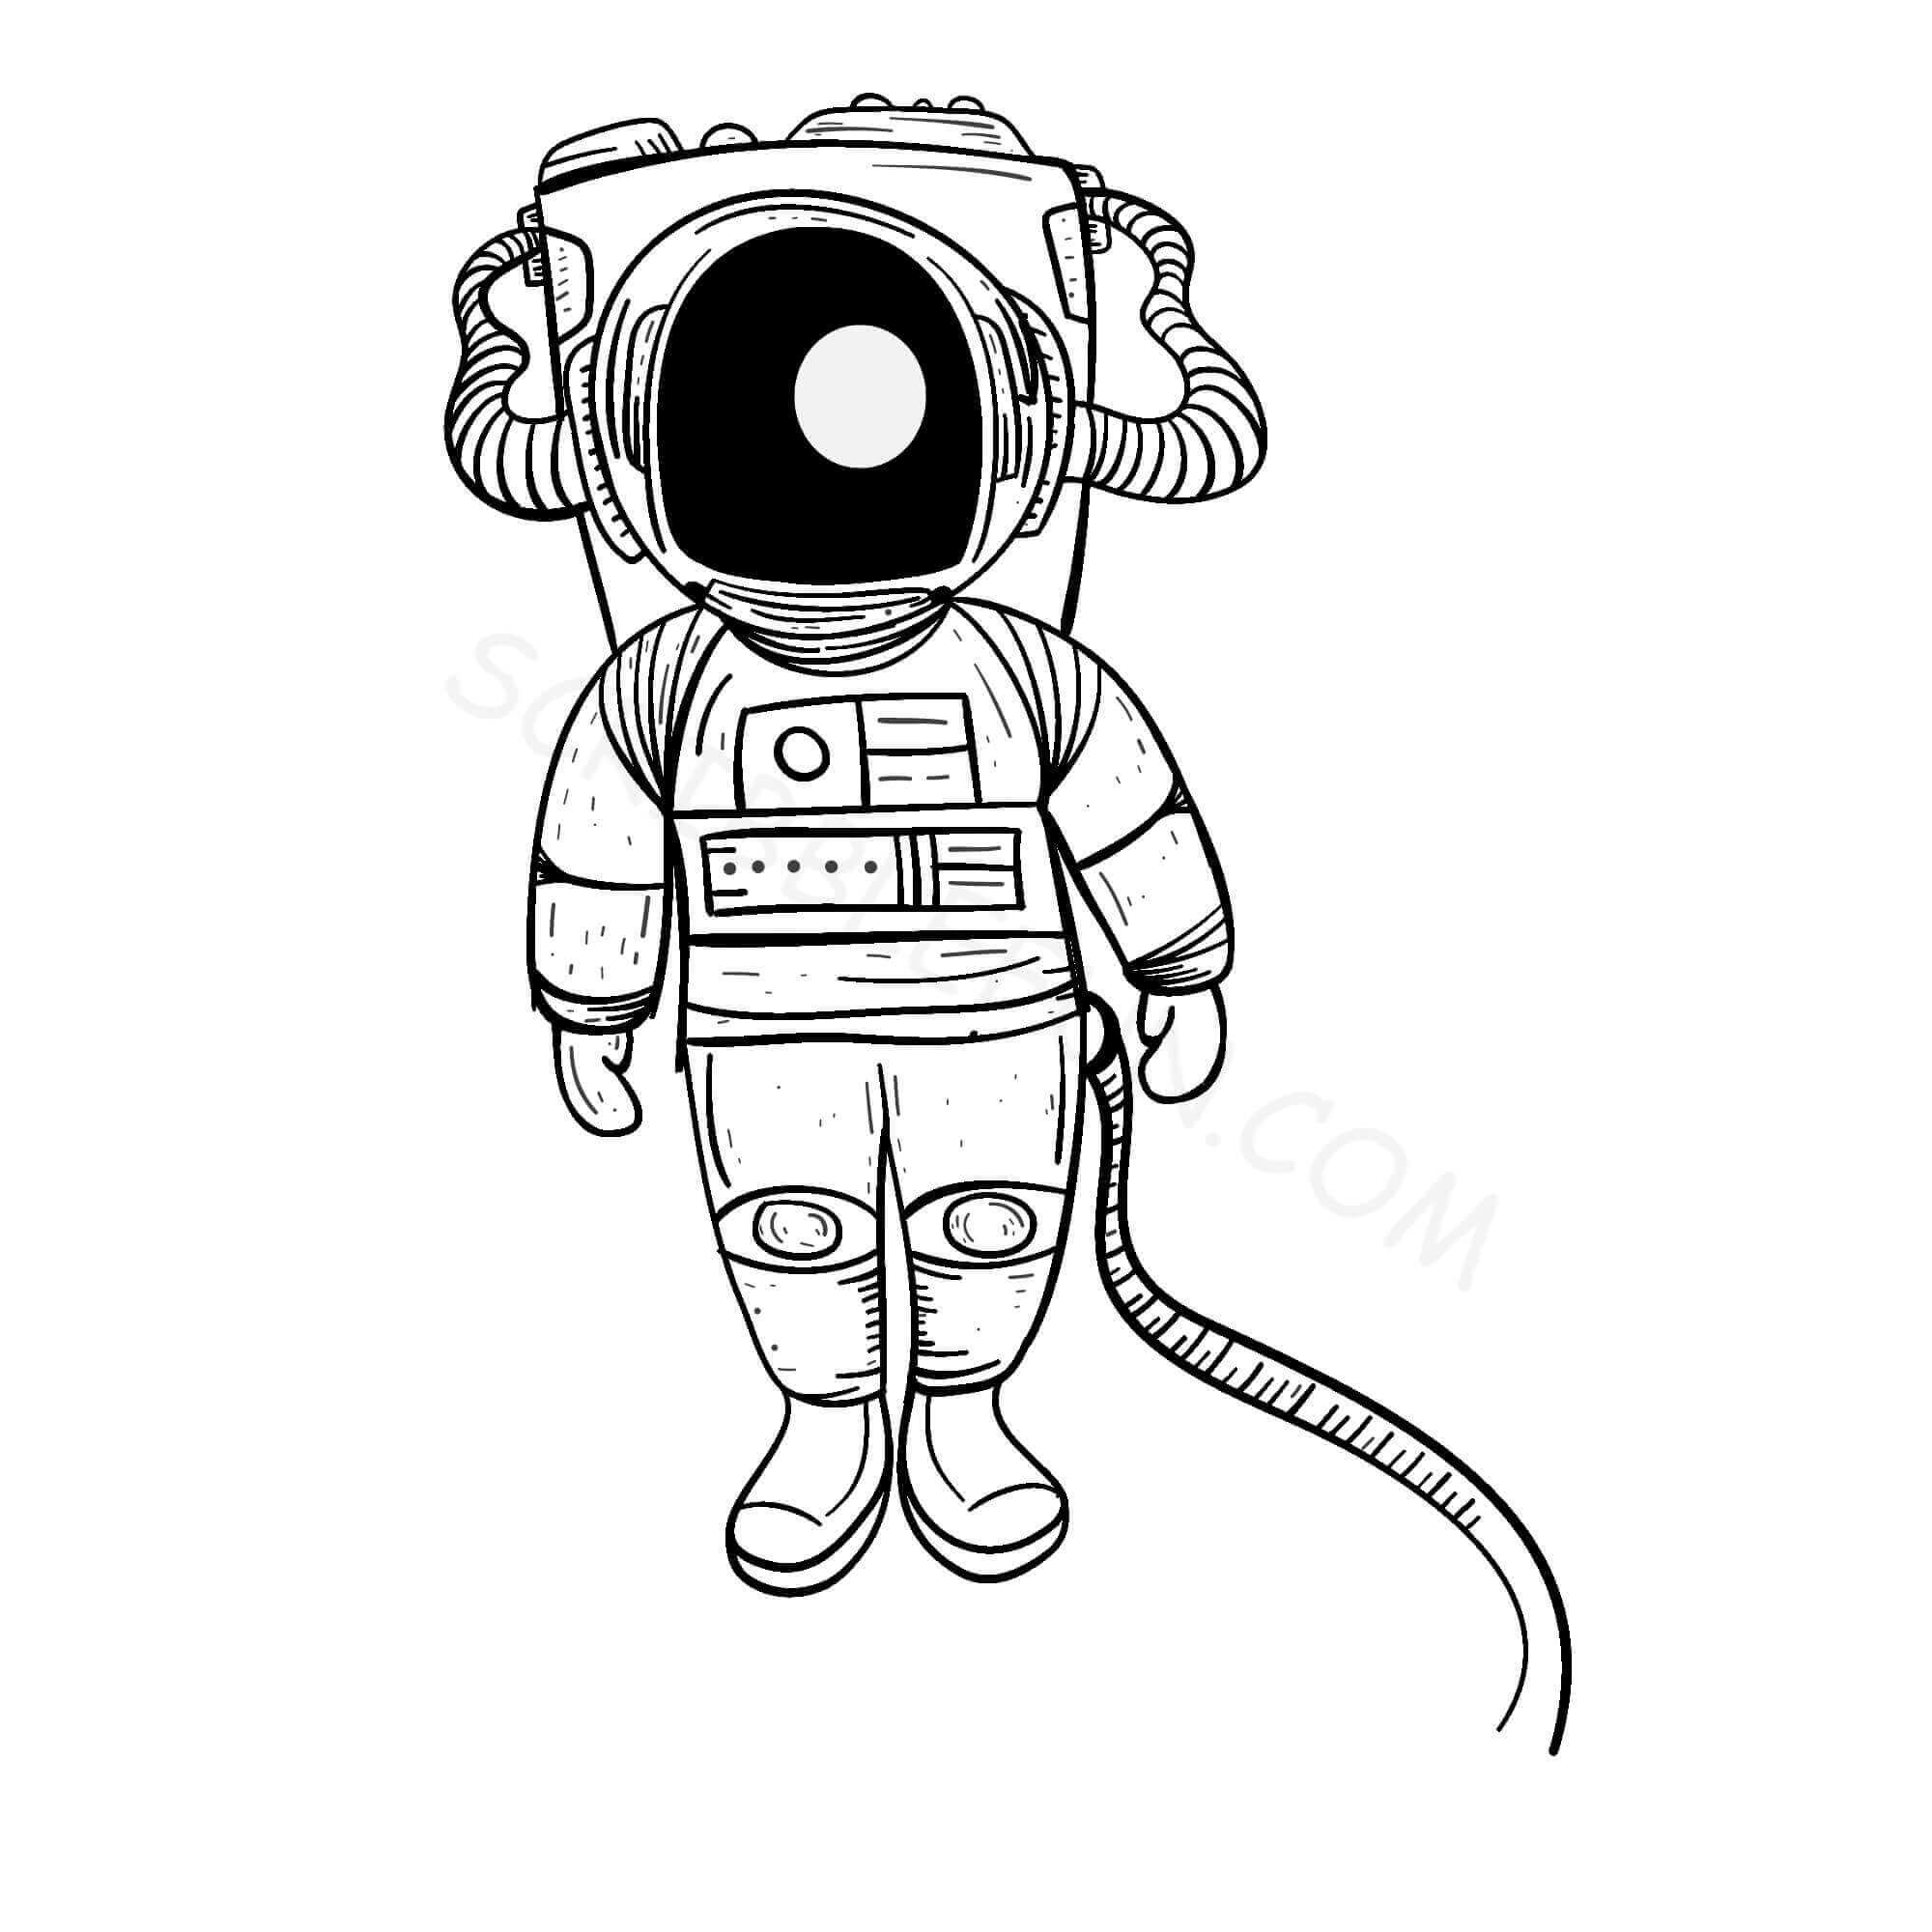 Astronaut coloring images